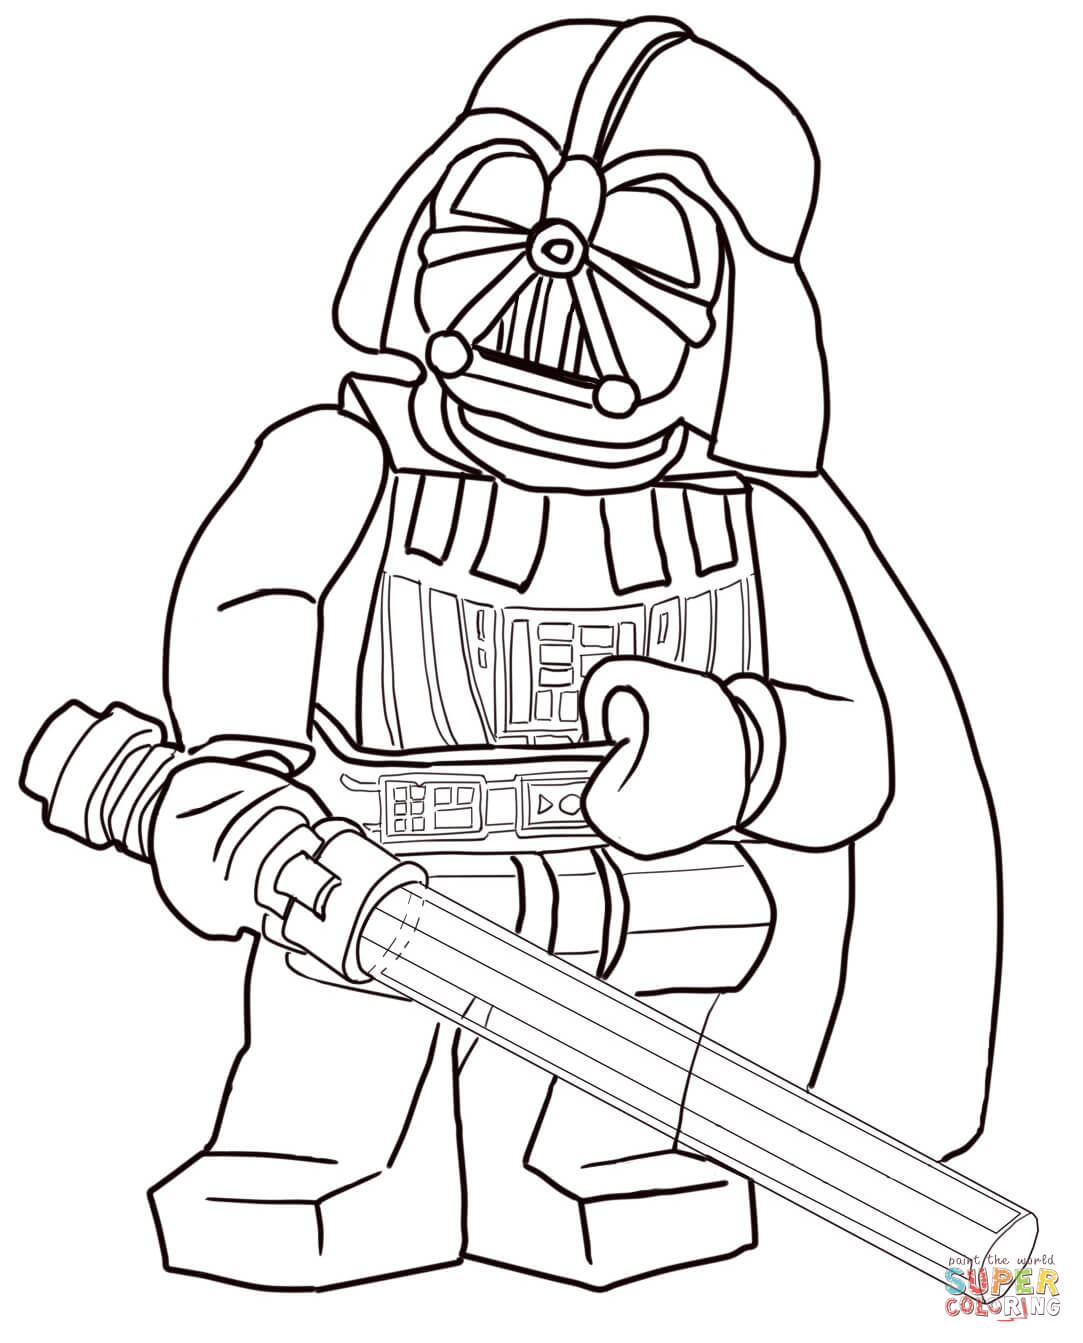 8_519 further darth vader coloring page free printable coloring pages on printable coloring pages darth vader also darth vader coloring page star wars coloring pages free on printable coloring pages darth vader together with star wars darth vader coloring pages getcoloringpages  on printable coloring pages darth vader also with 13 darth vader coloring pages print color craft on printable coloring pages darth vader